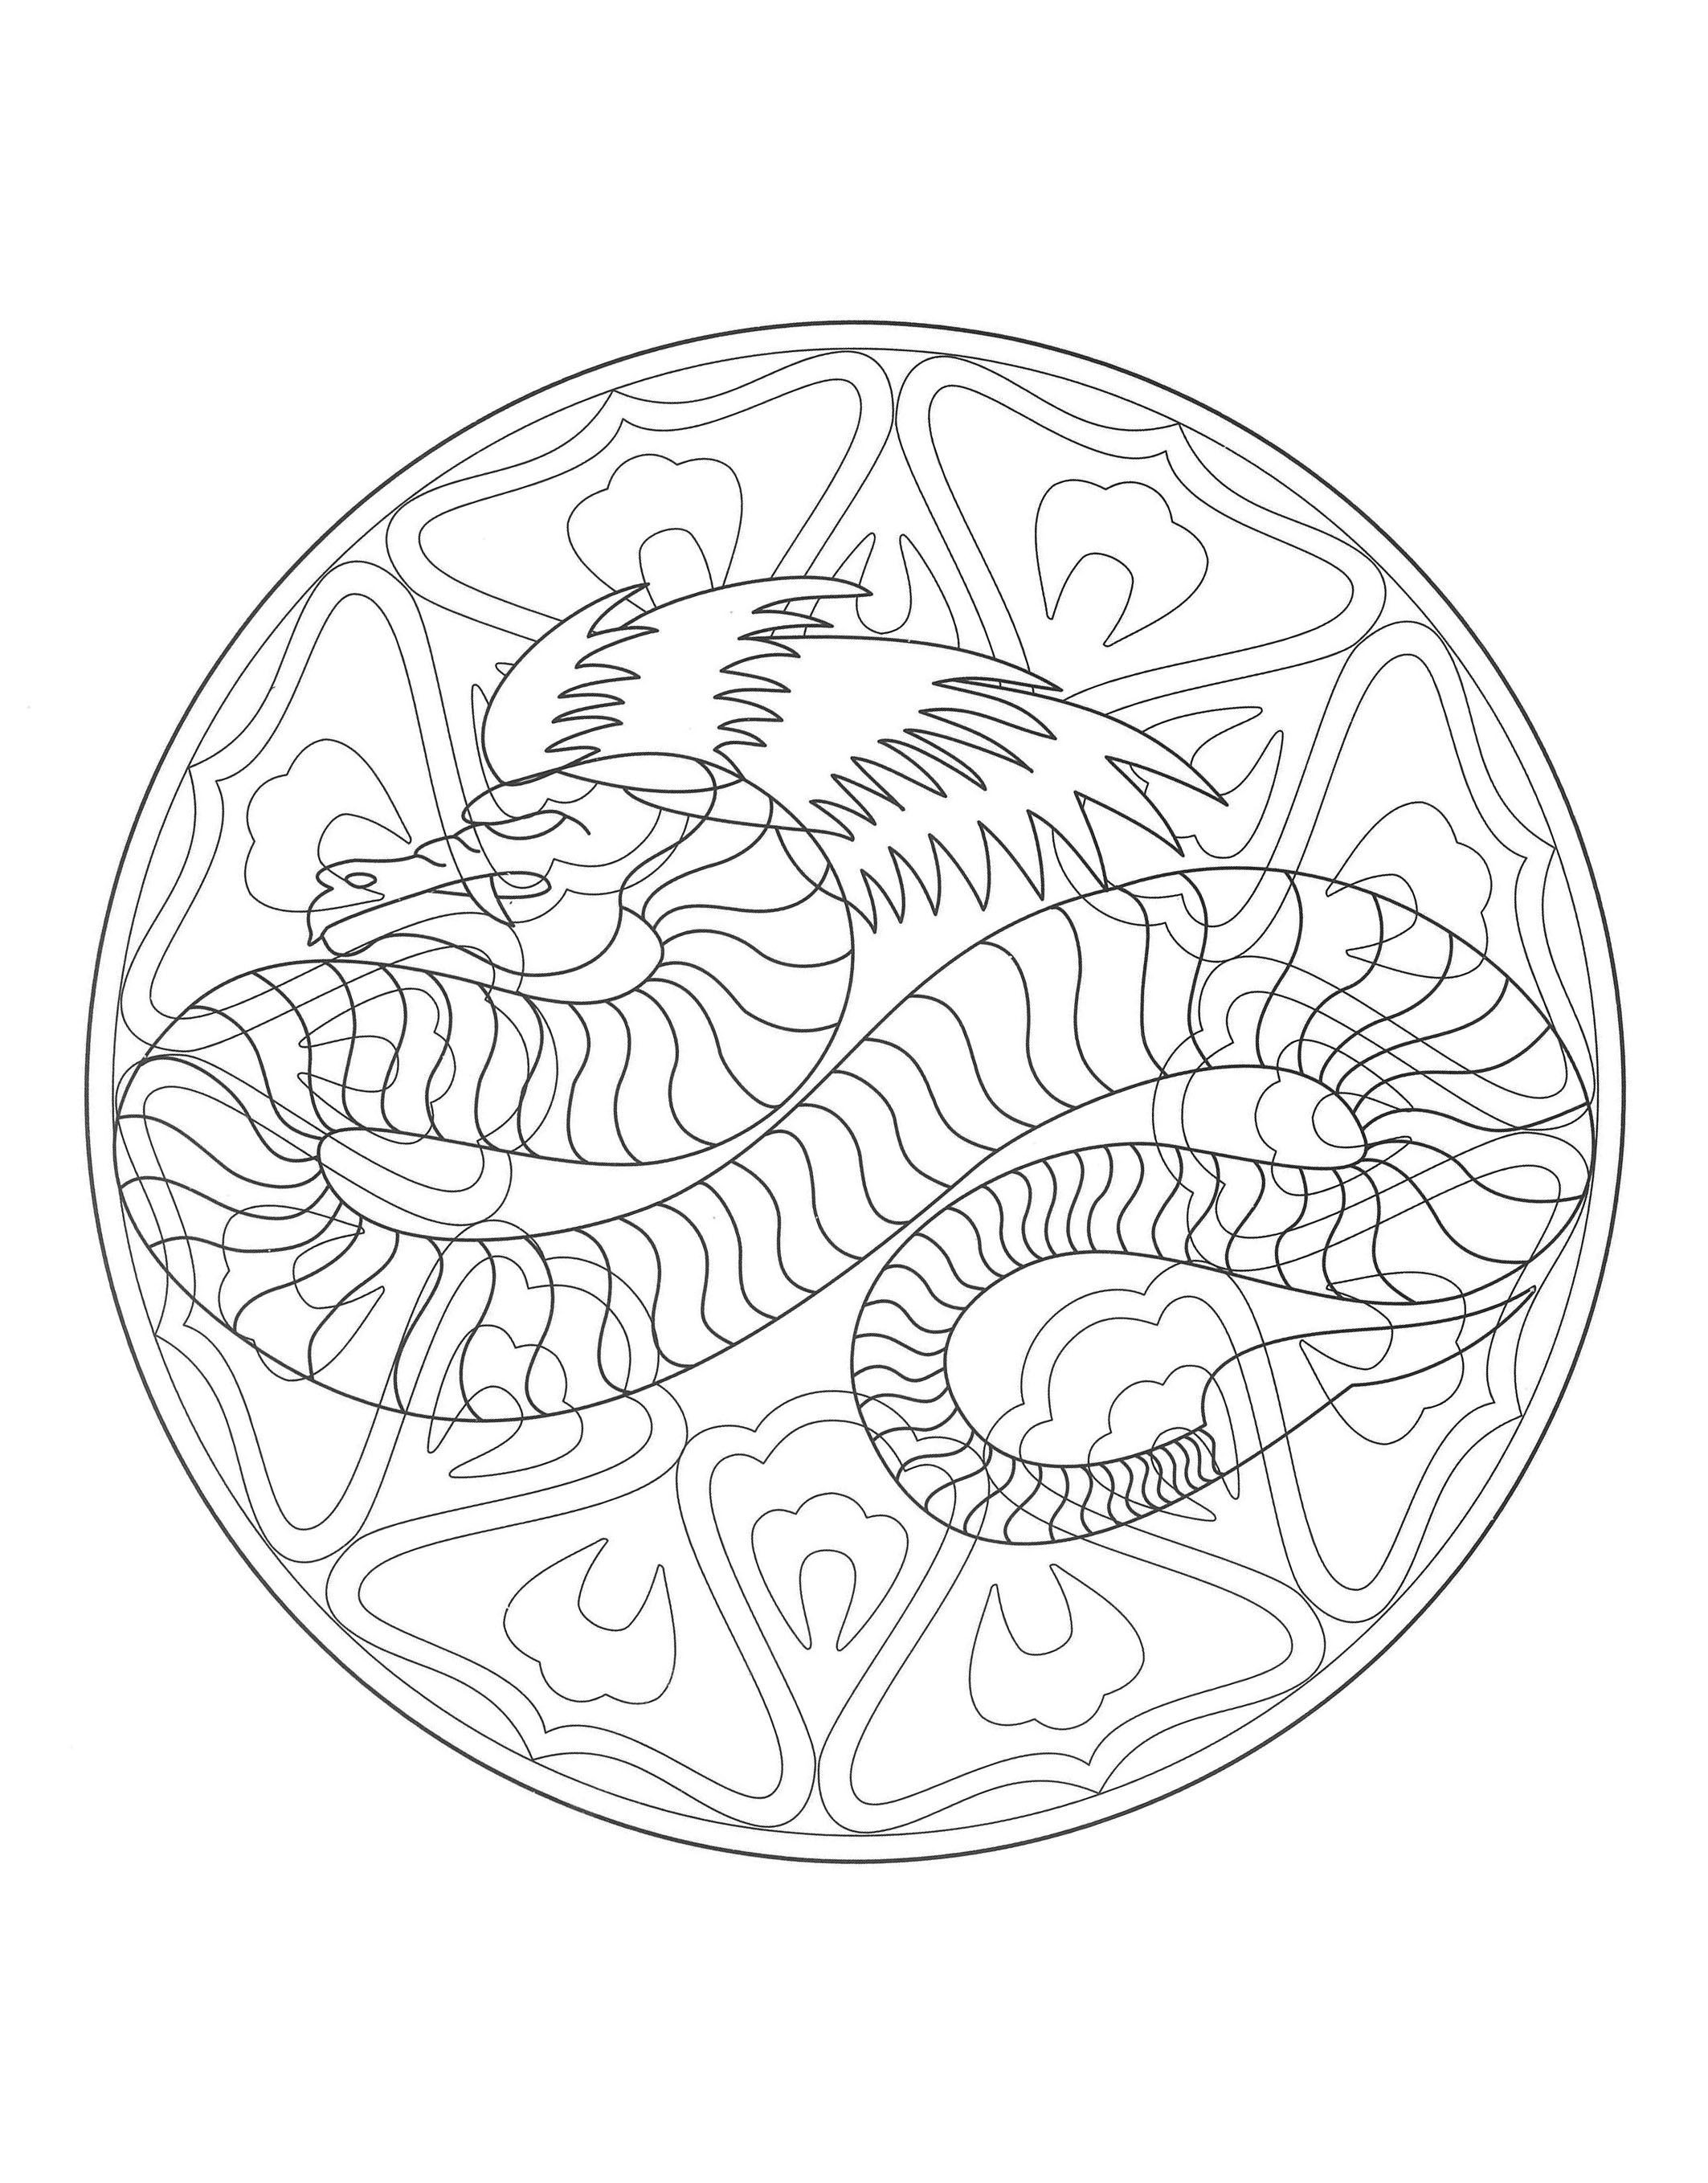 Mandala Dragon 4 Mandalas Coloring Pages For Adults Just Color